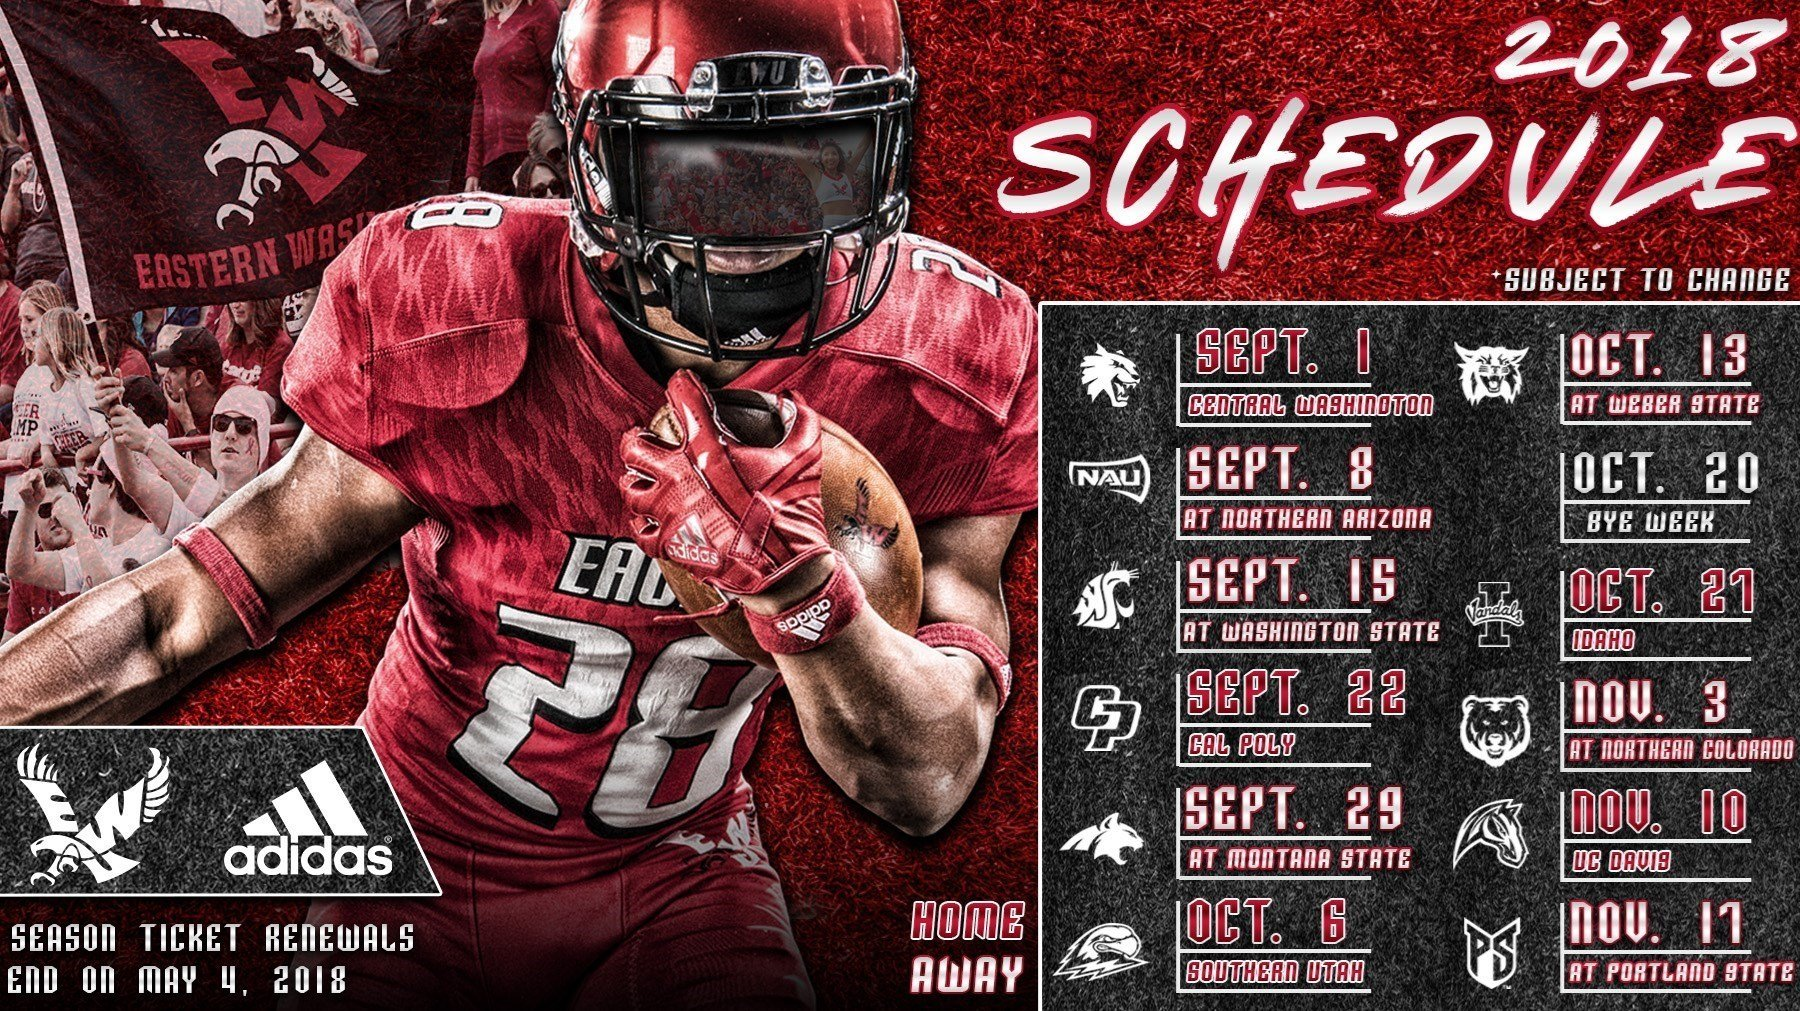 Photo: EWU Athletics